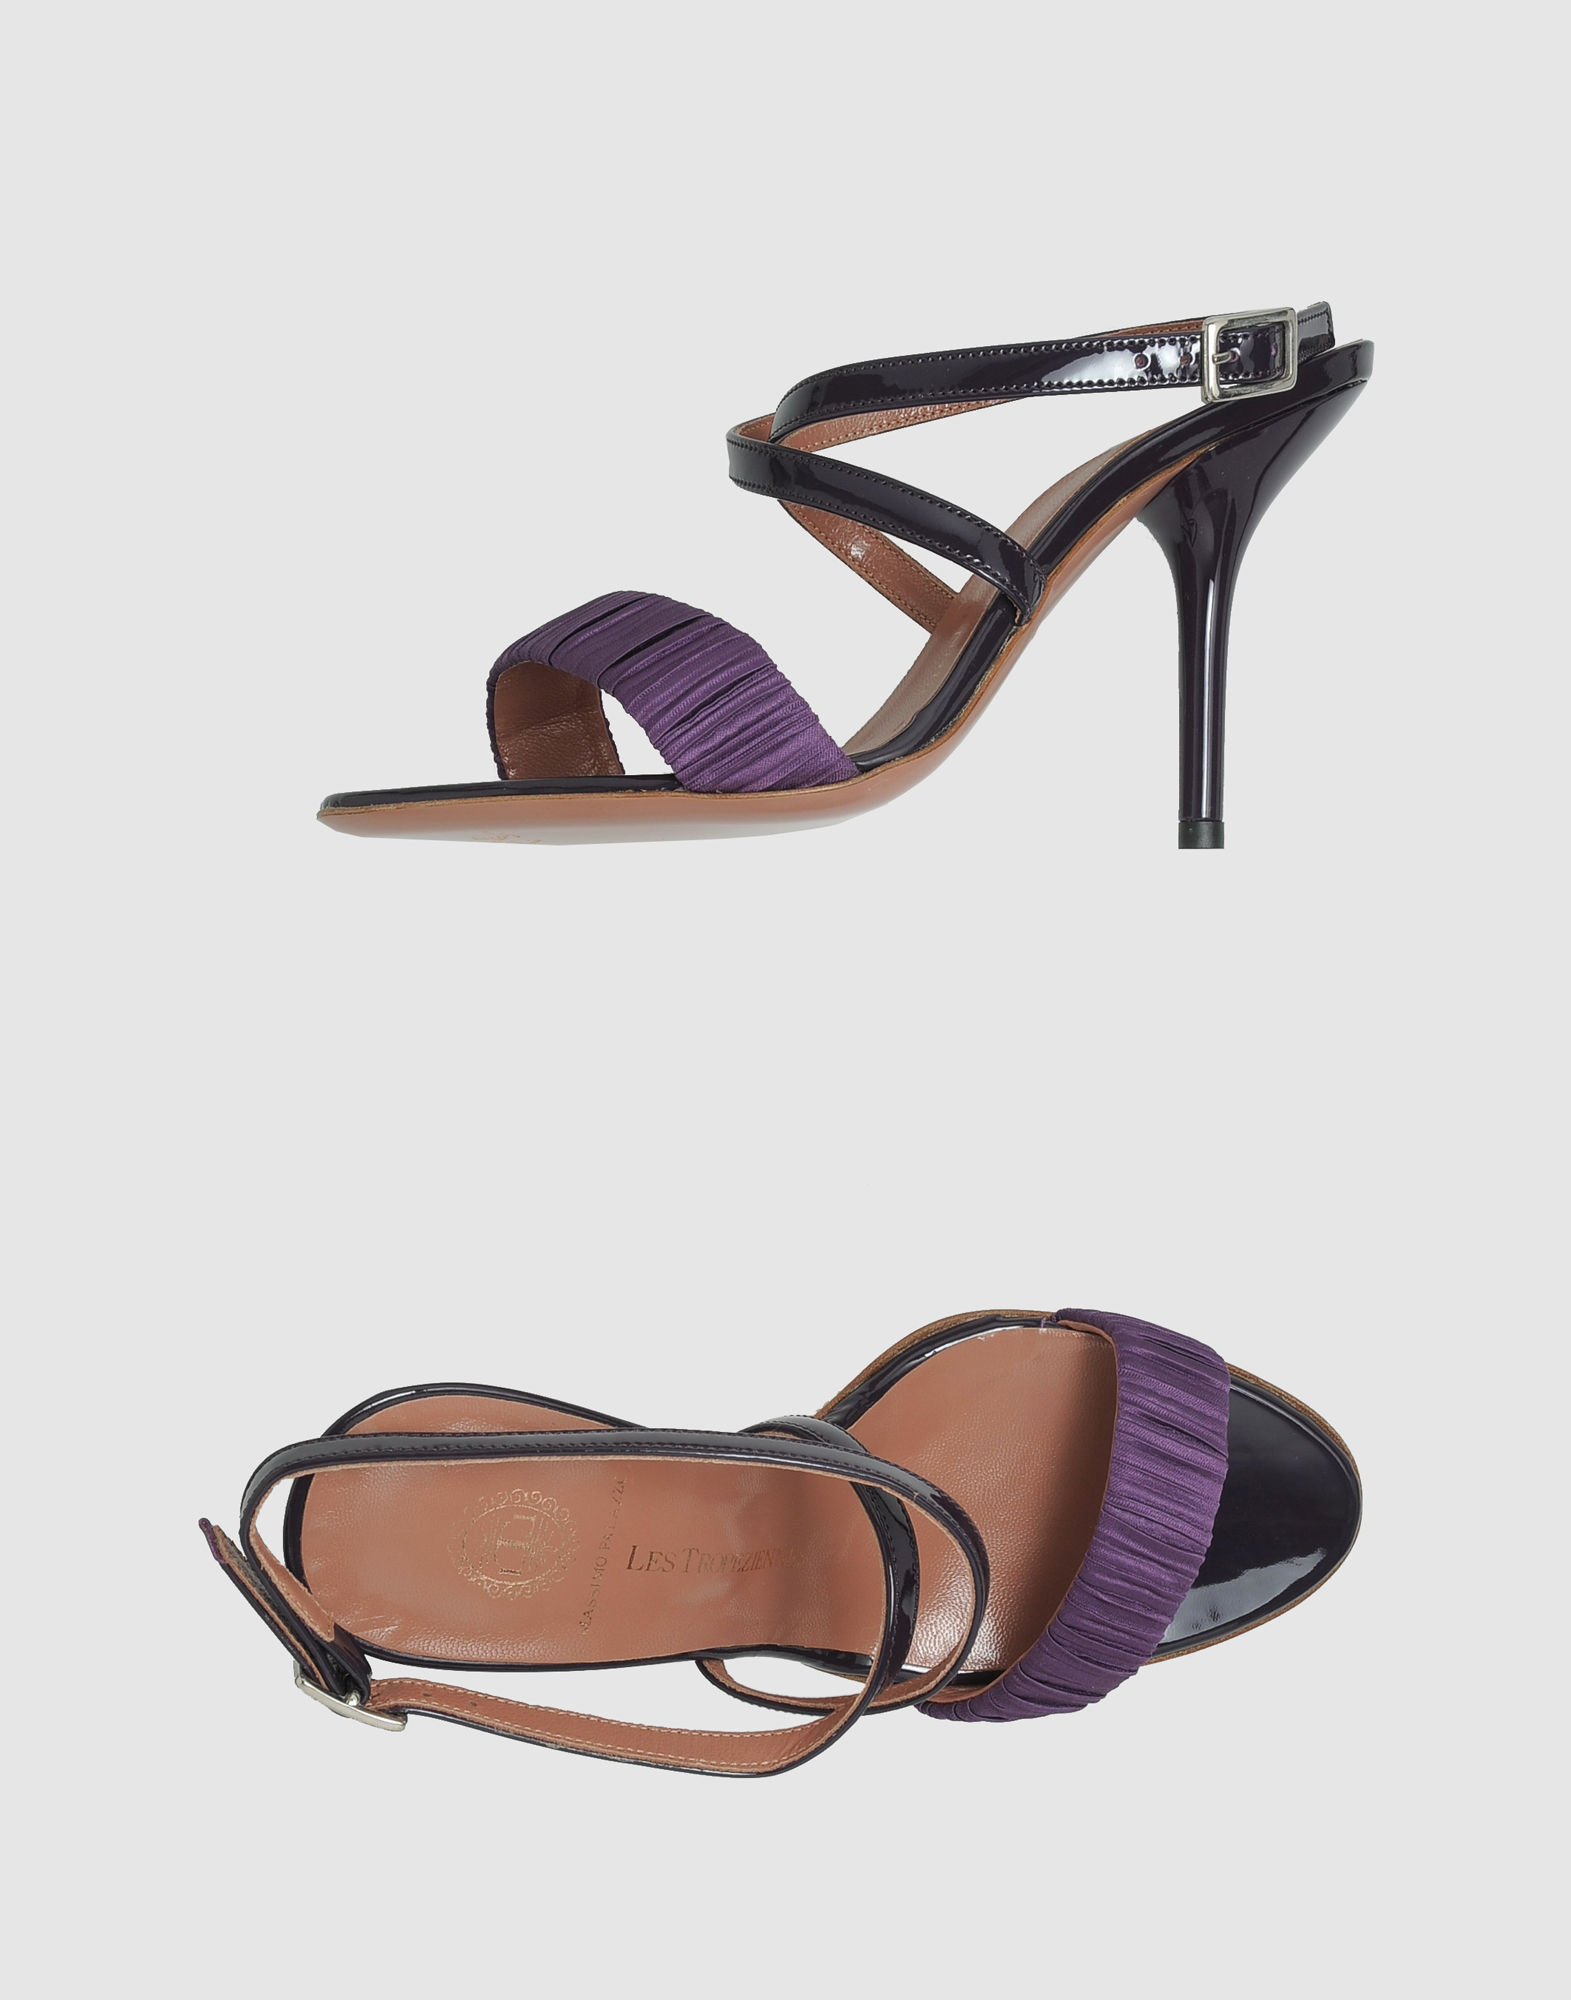 les tropeziennes high heeled sandals in purple lyst. Black Bedroom Furniture Sets. Home Design Ideas